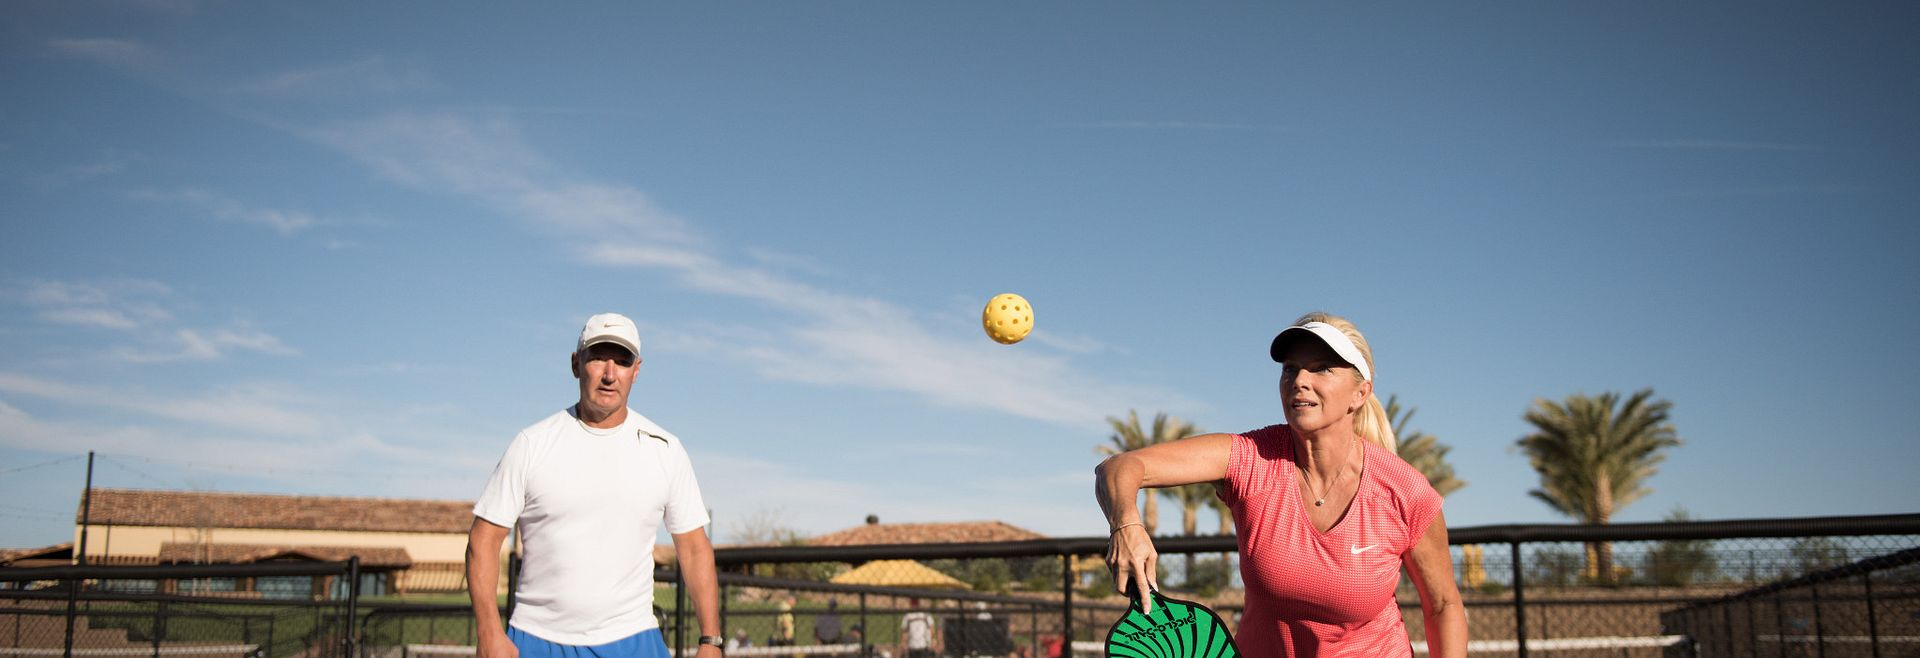 woman and man playing pickleball